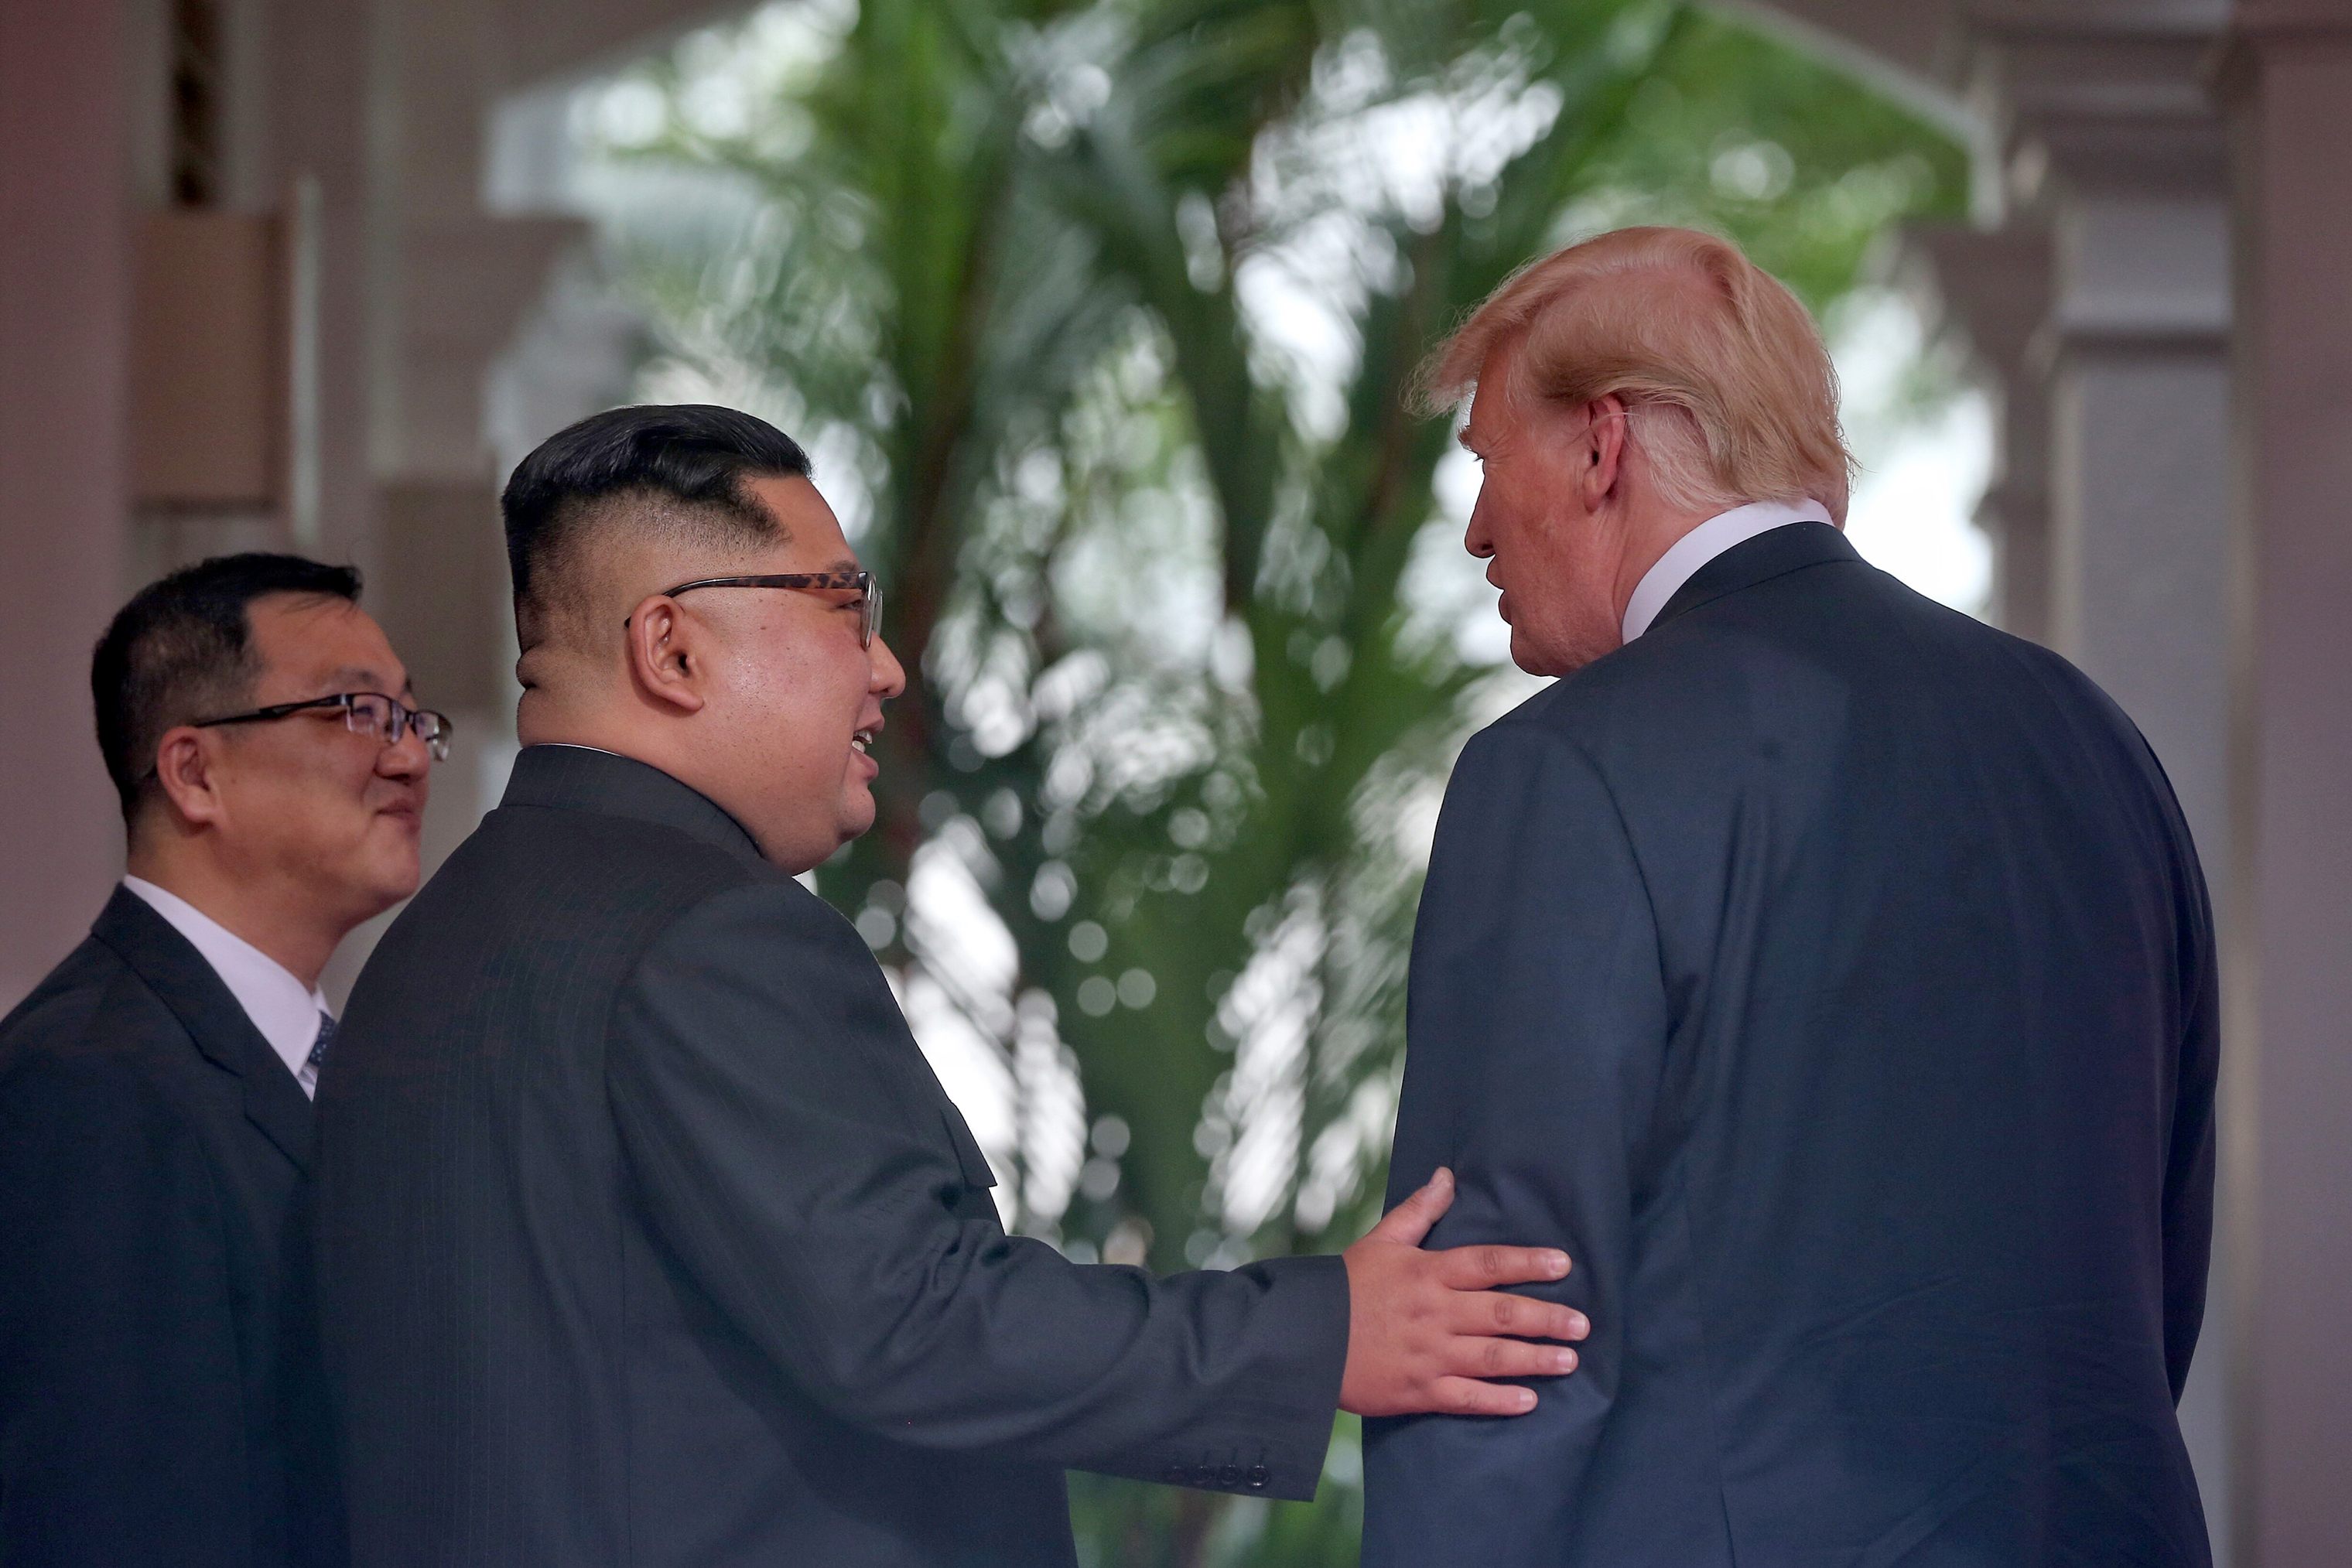 North Korean leader Kim Jong Un touches the arm of PresidentTrump shortly after meeting at their summit in Singapore on June 12, 2018.